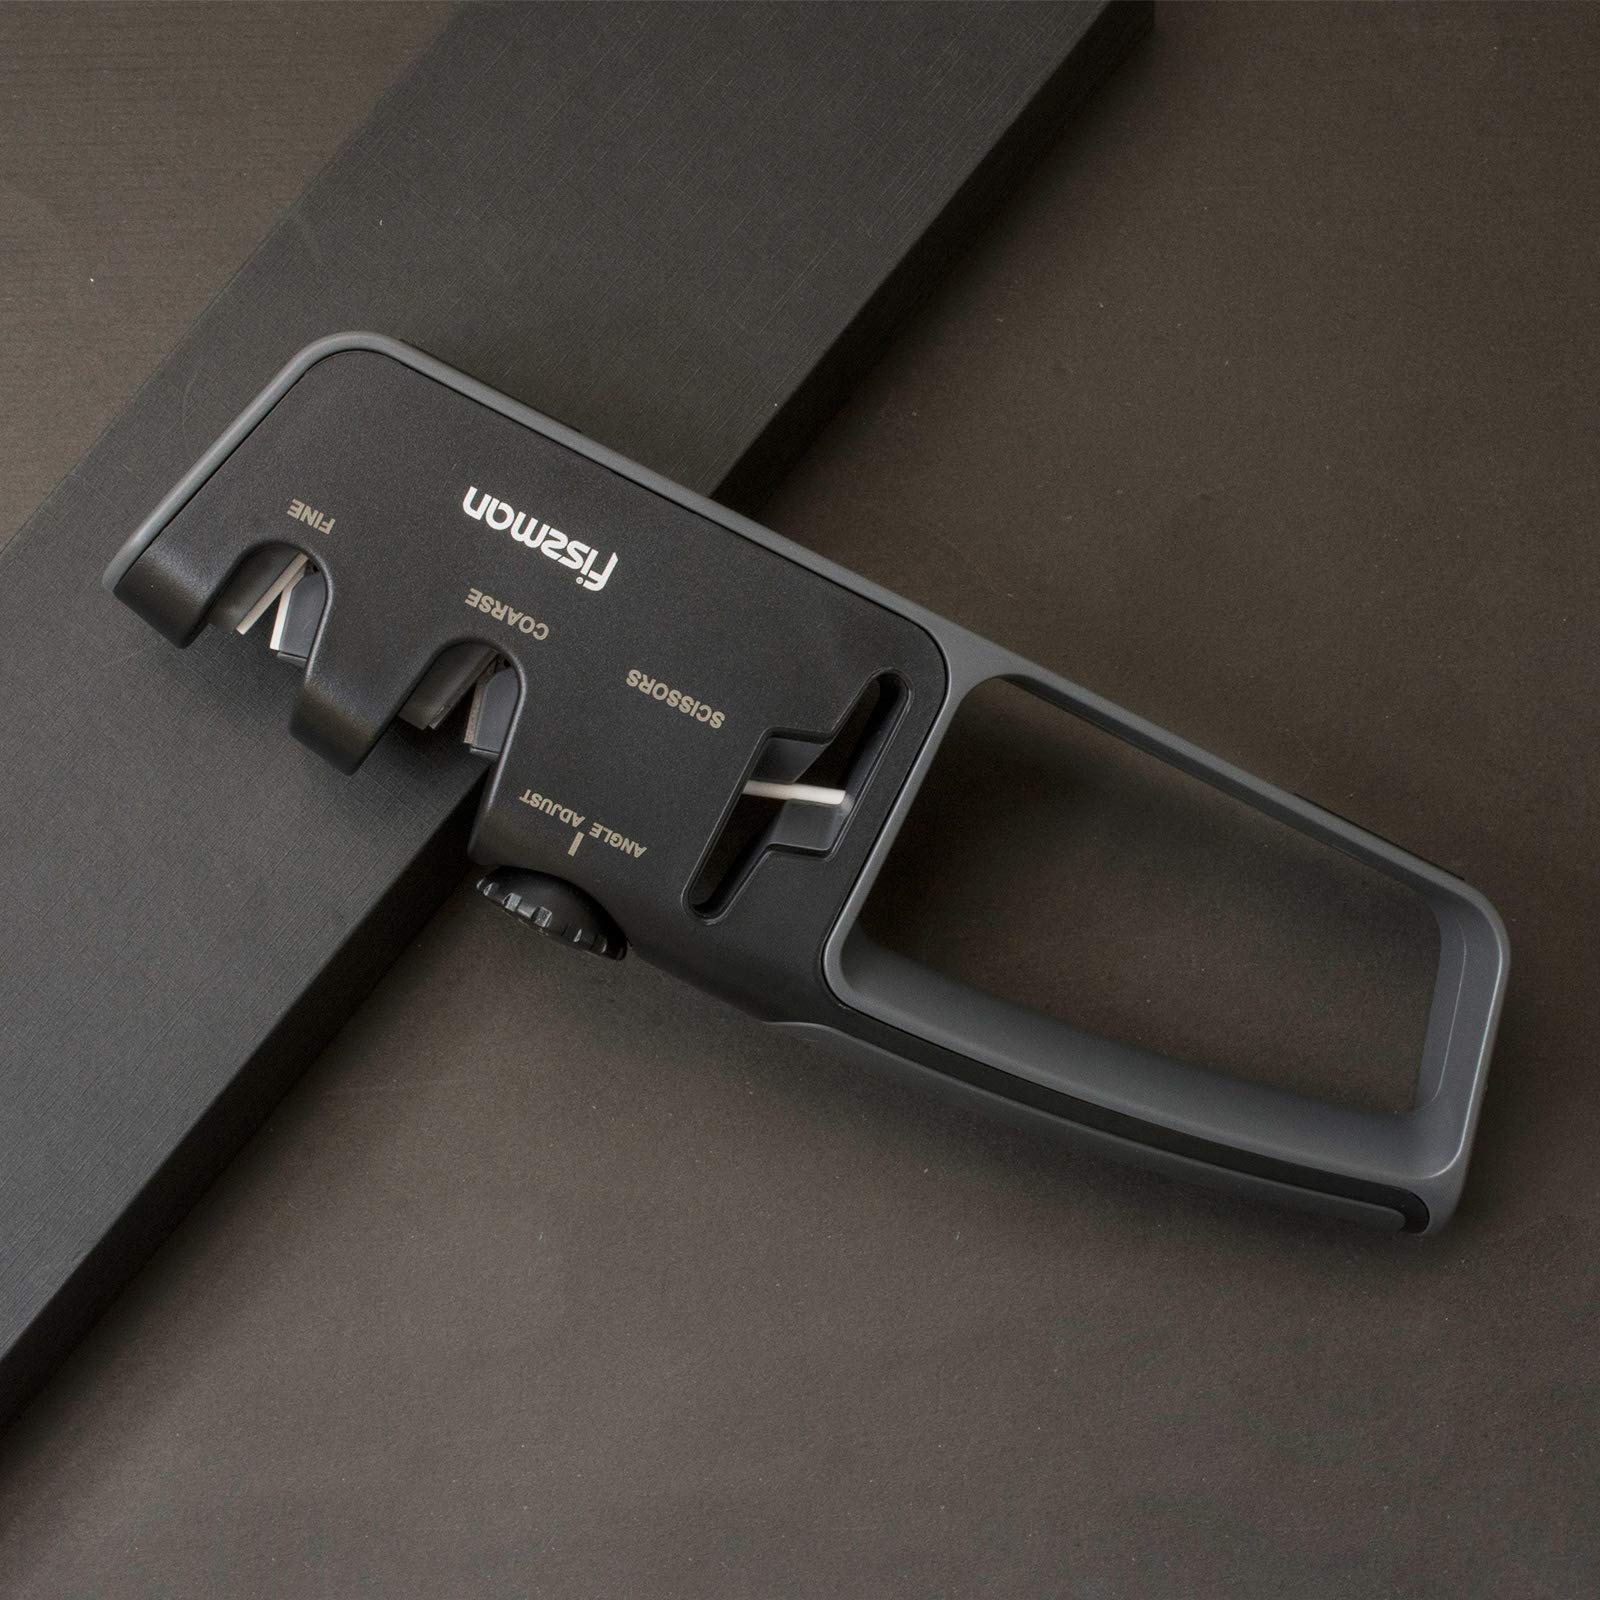 Fissman Knife&Scissors Sharpener Adjustable Angle with 2 Stage Grinder, the Best Gift Ideas for Women and Men, Ideal Kitchen Assist for Knives, Safe& Easy to Use by FISSMAN